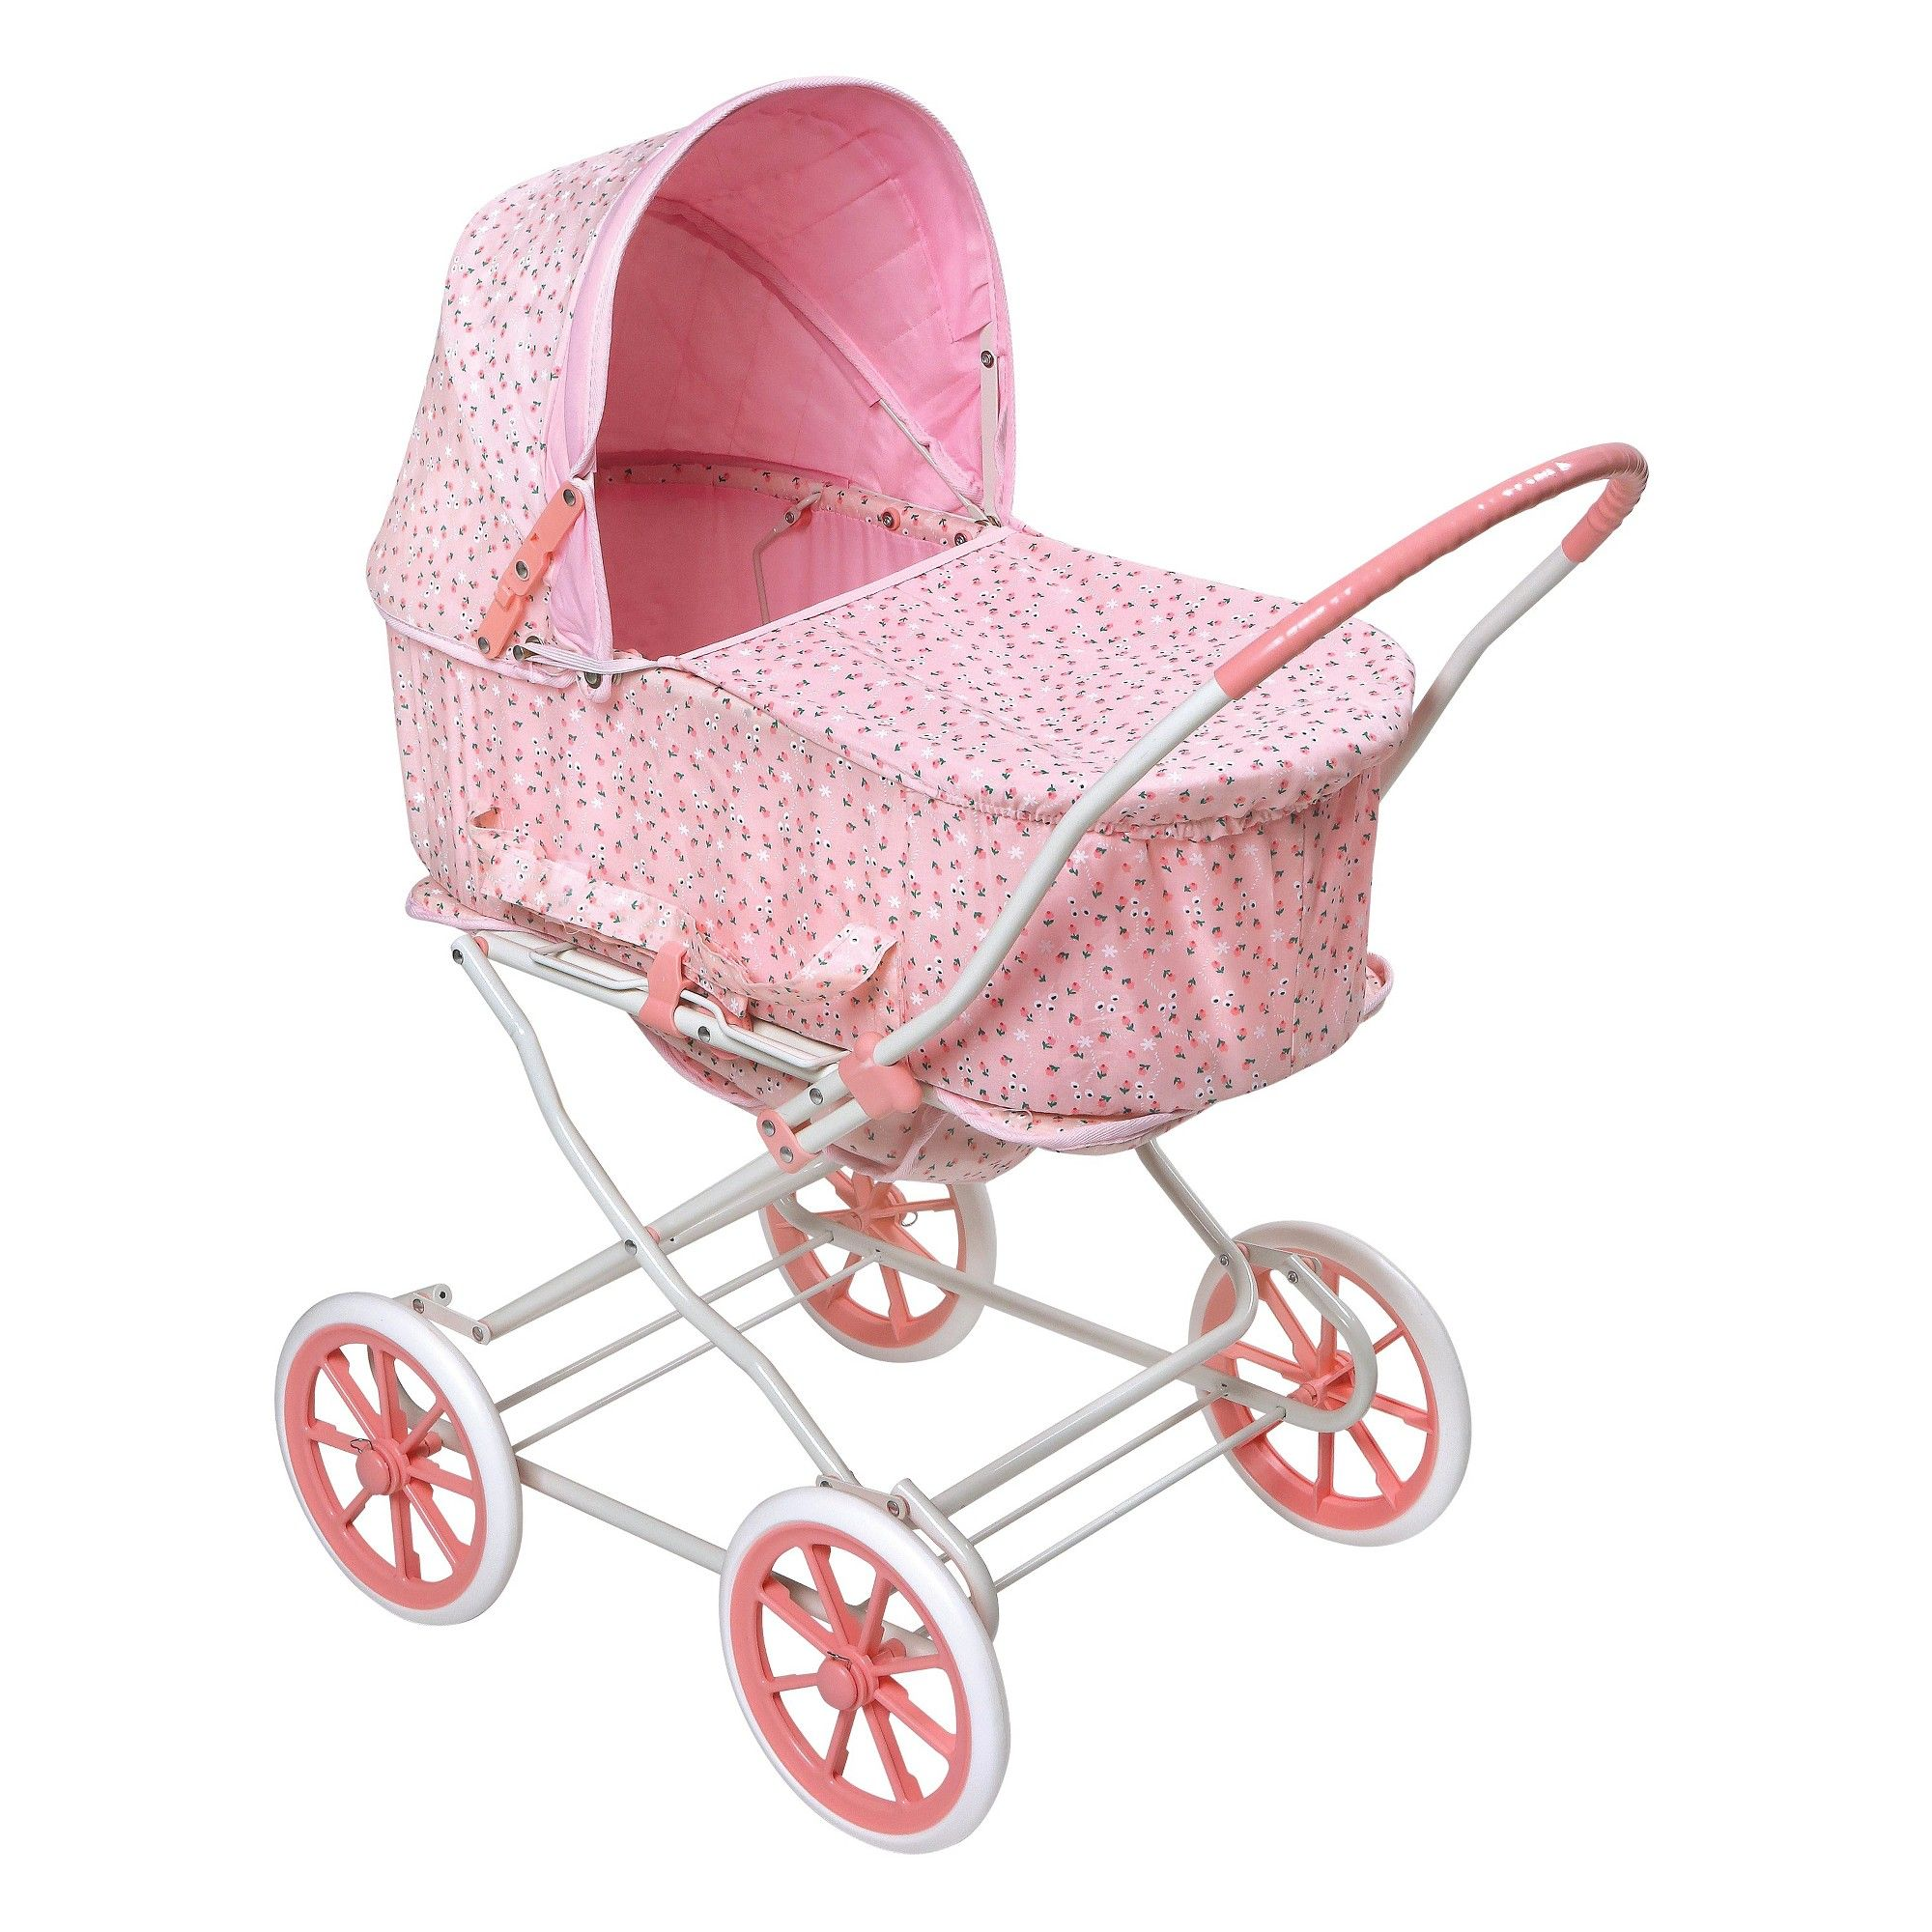 Badger Basket Rosebud 3in1 Doll Carrier/Stroller Pink